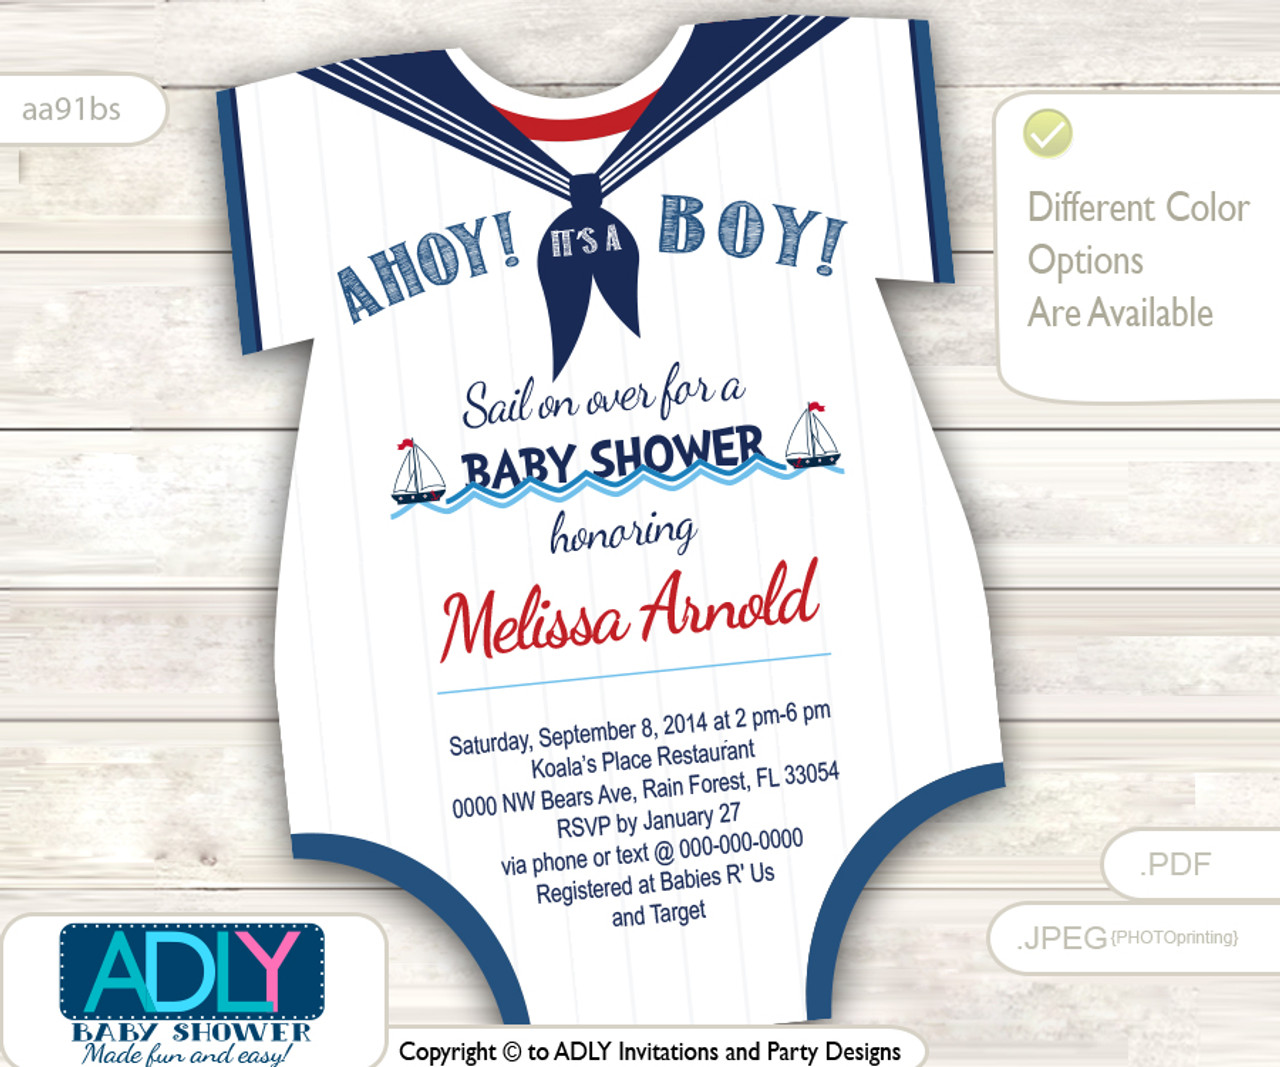 photo about Printable Onesie Baby Shower Invitations identify Nautical Onesies Boy or girl Shower Invitation for a Boy or girl Boy in just Armed forces Blue, Pink, White colours. Minor Sailor shower invitation,sail upon about